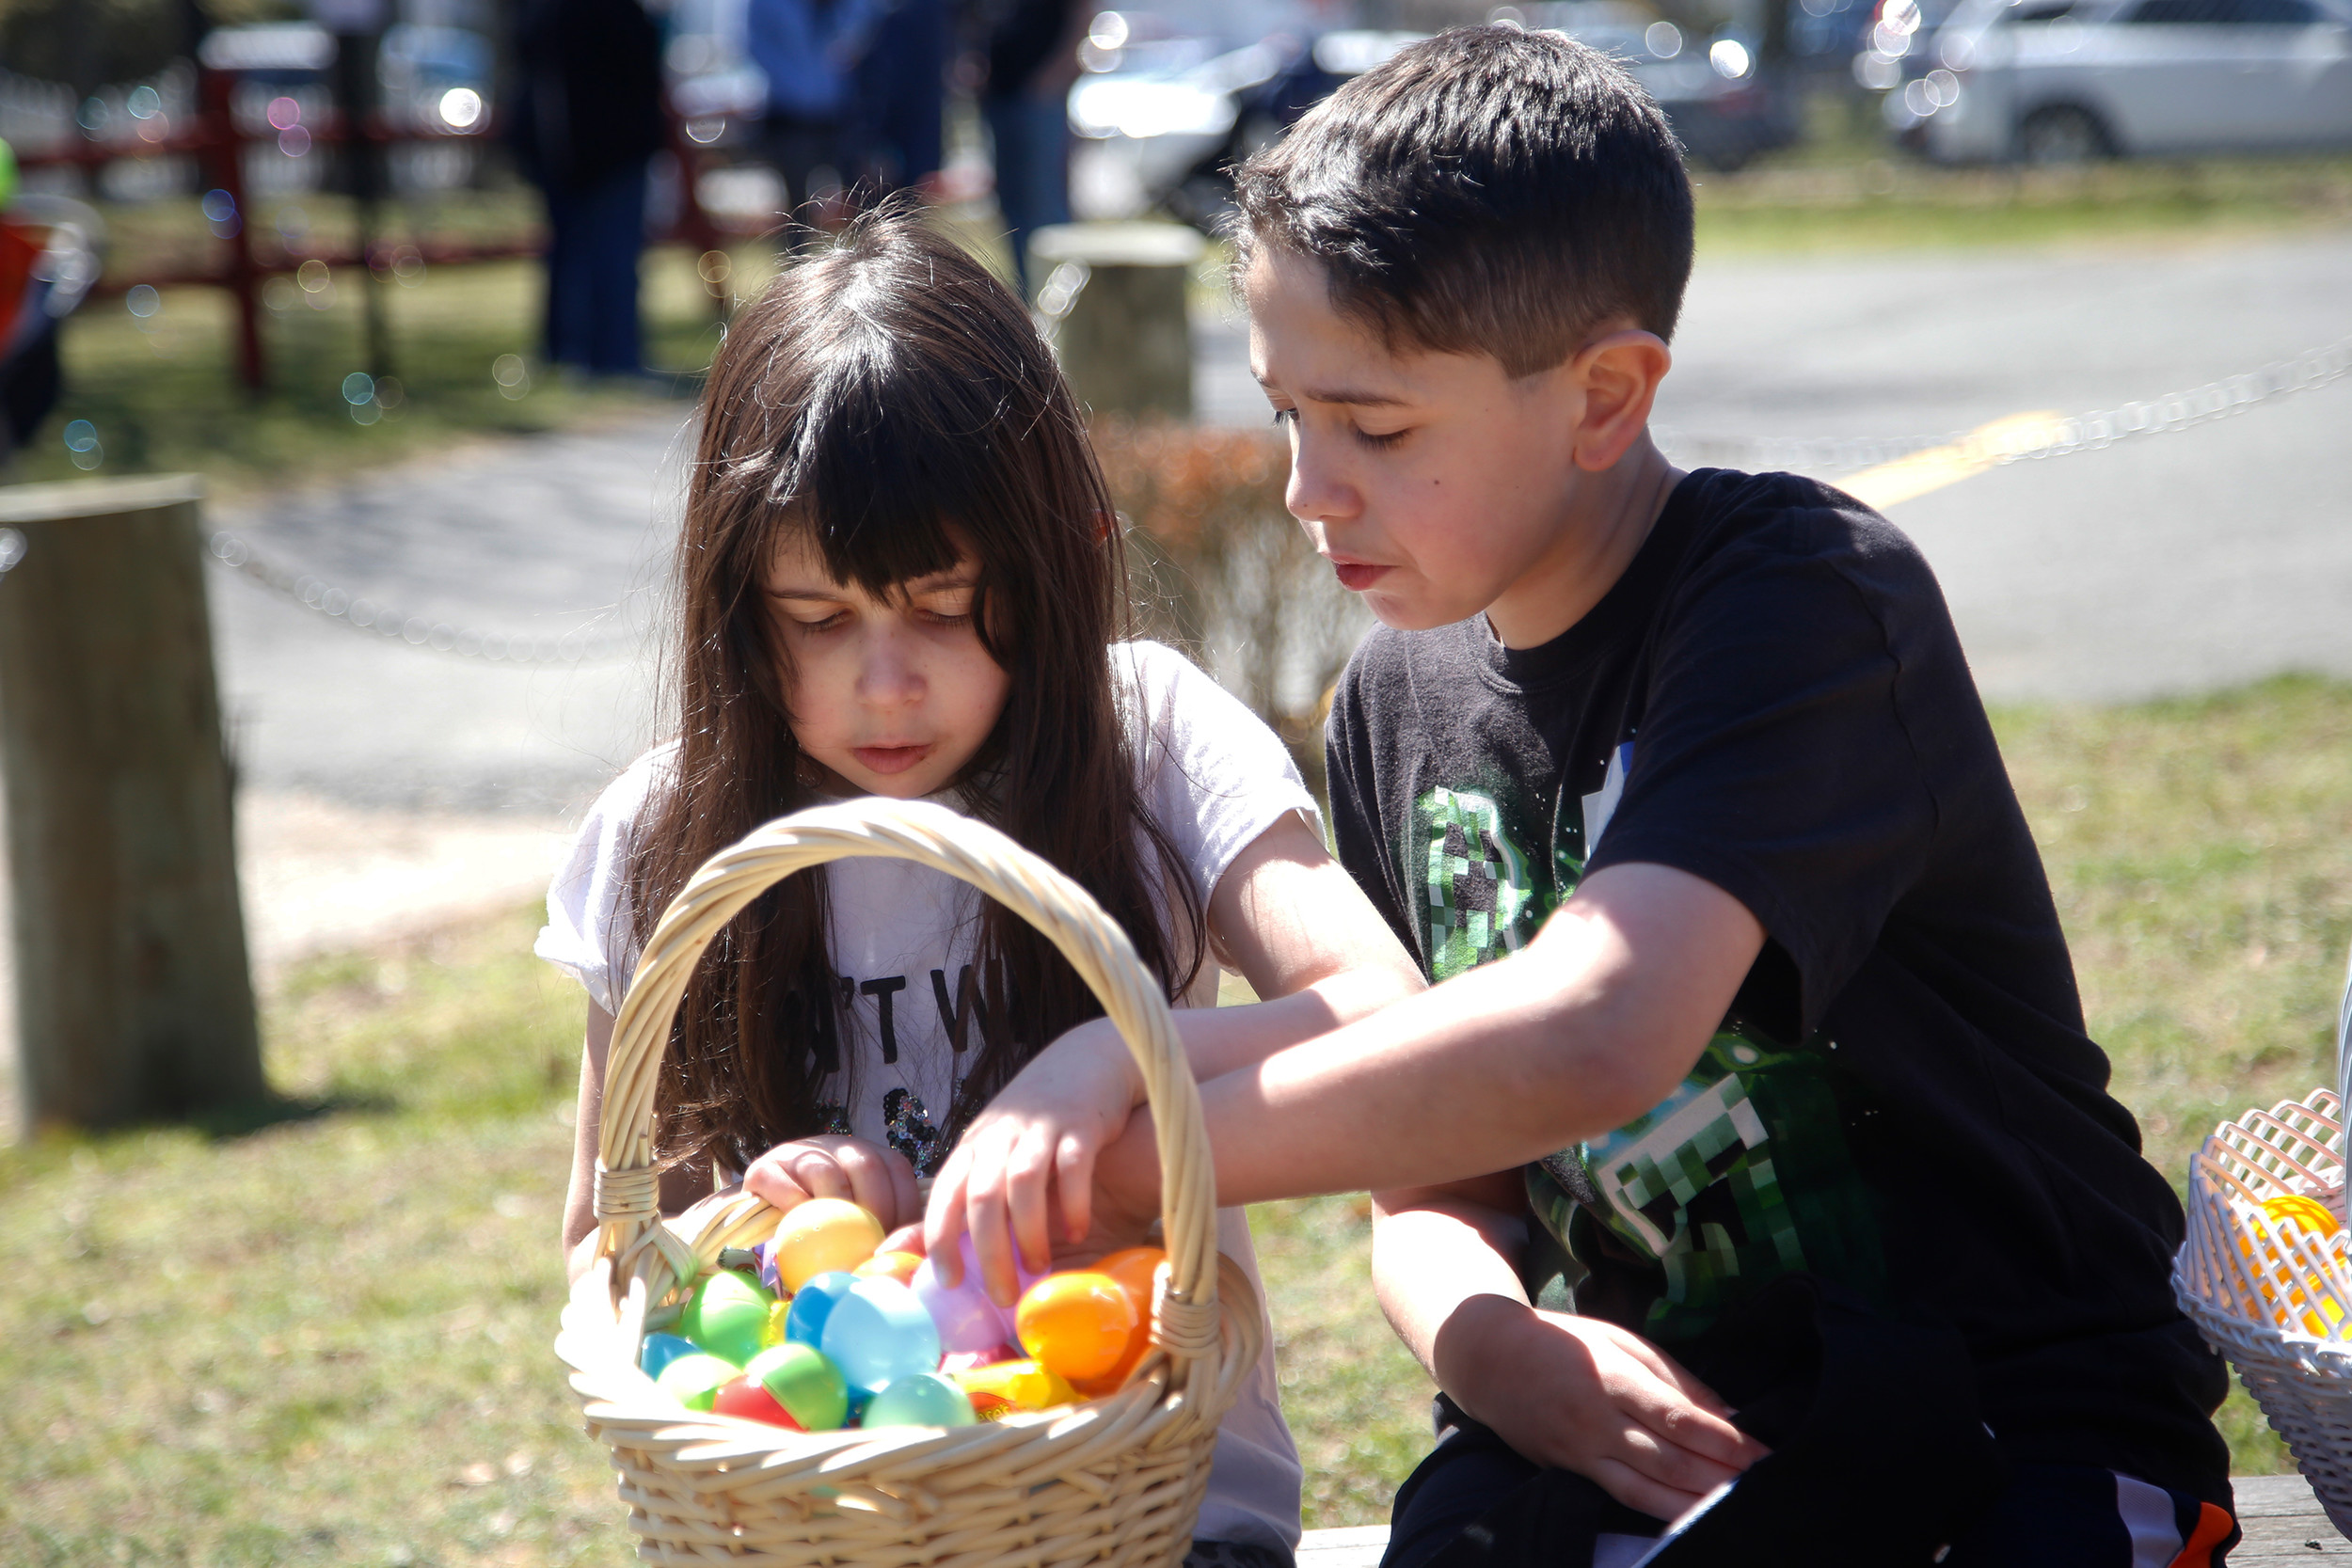 Julianna and Salvatore Cassese sorted through their egg collection.